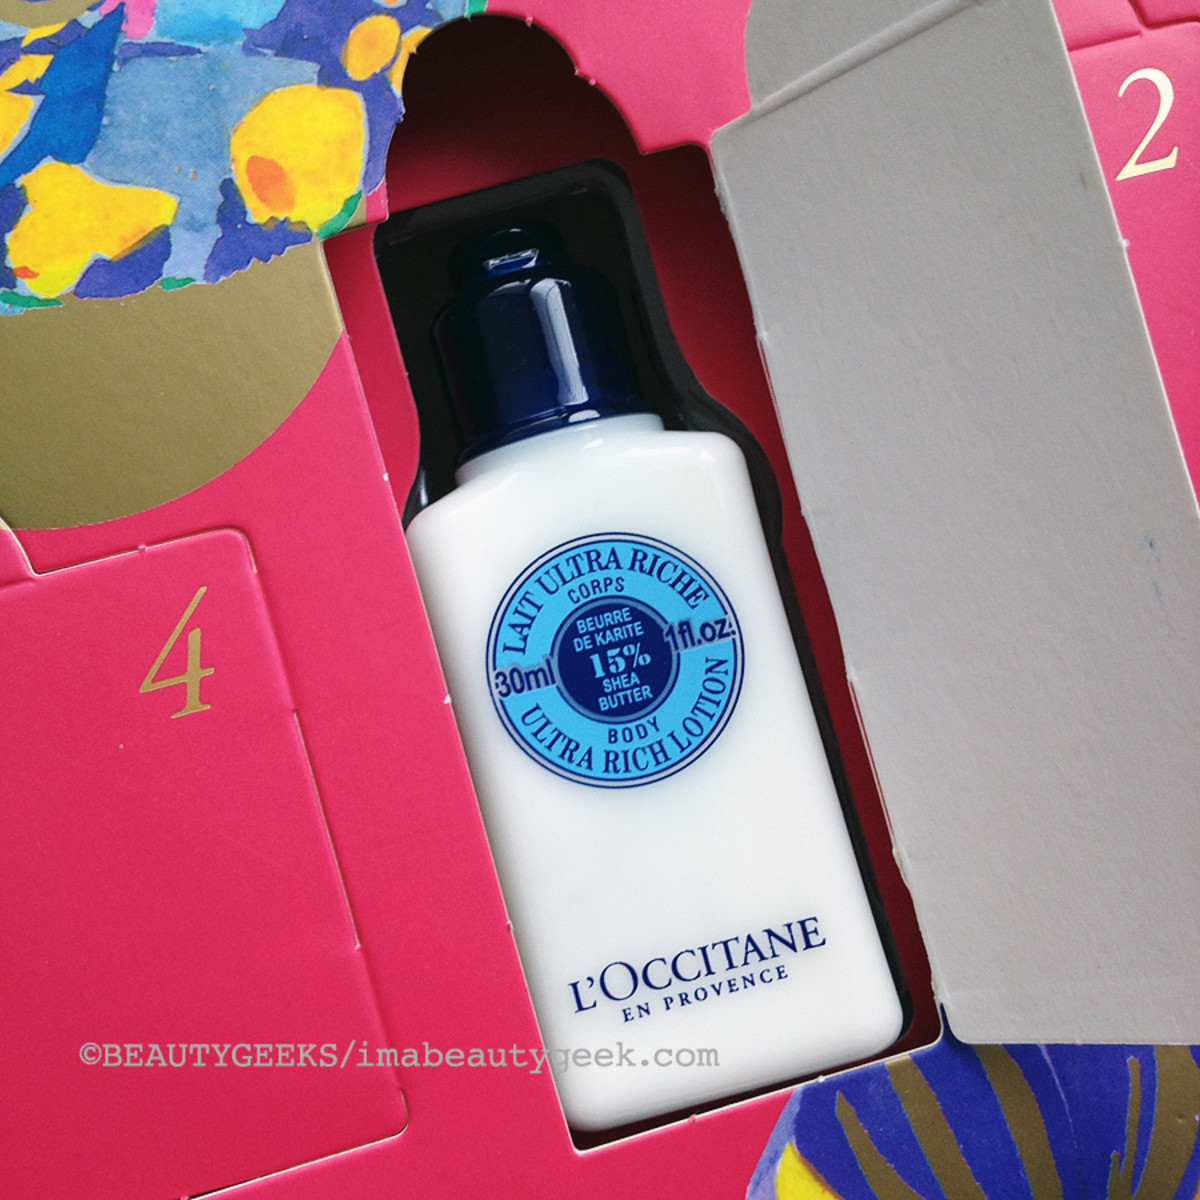 advent calendars 2014_L'Occitane 13 desserts of Provence_psuedo advent calendar